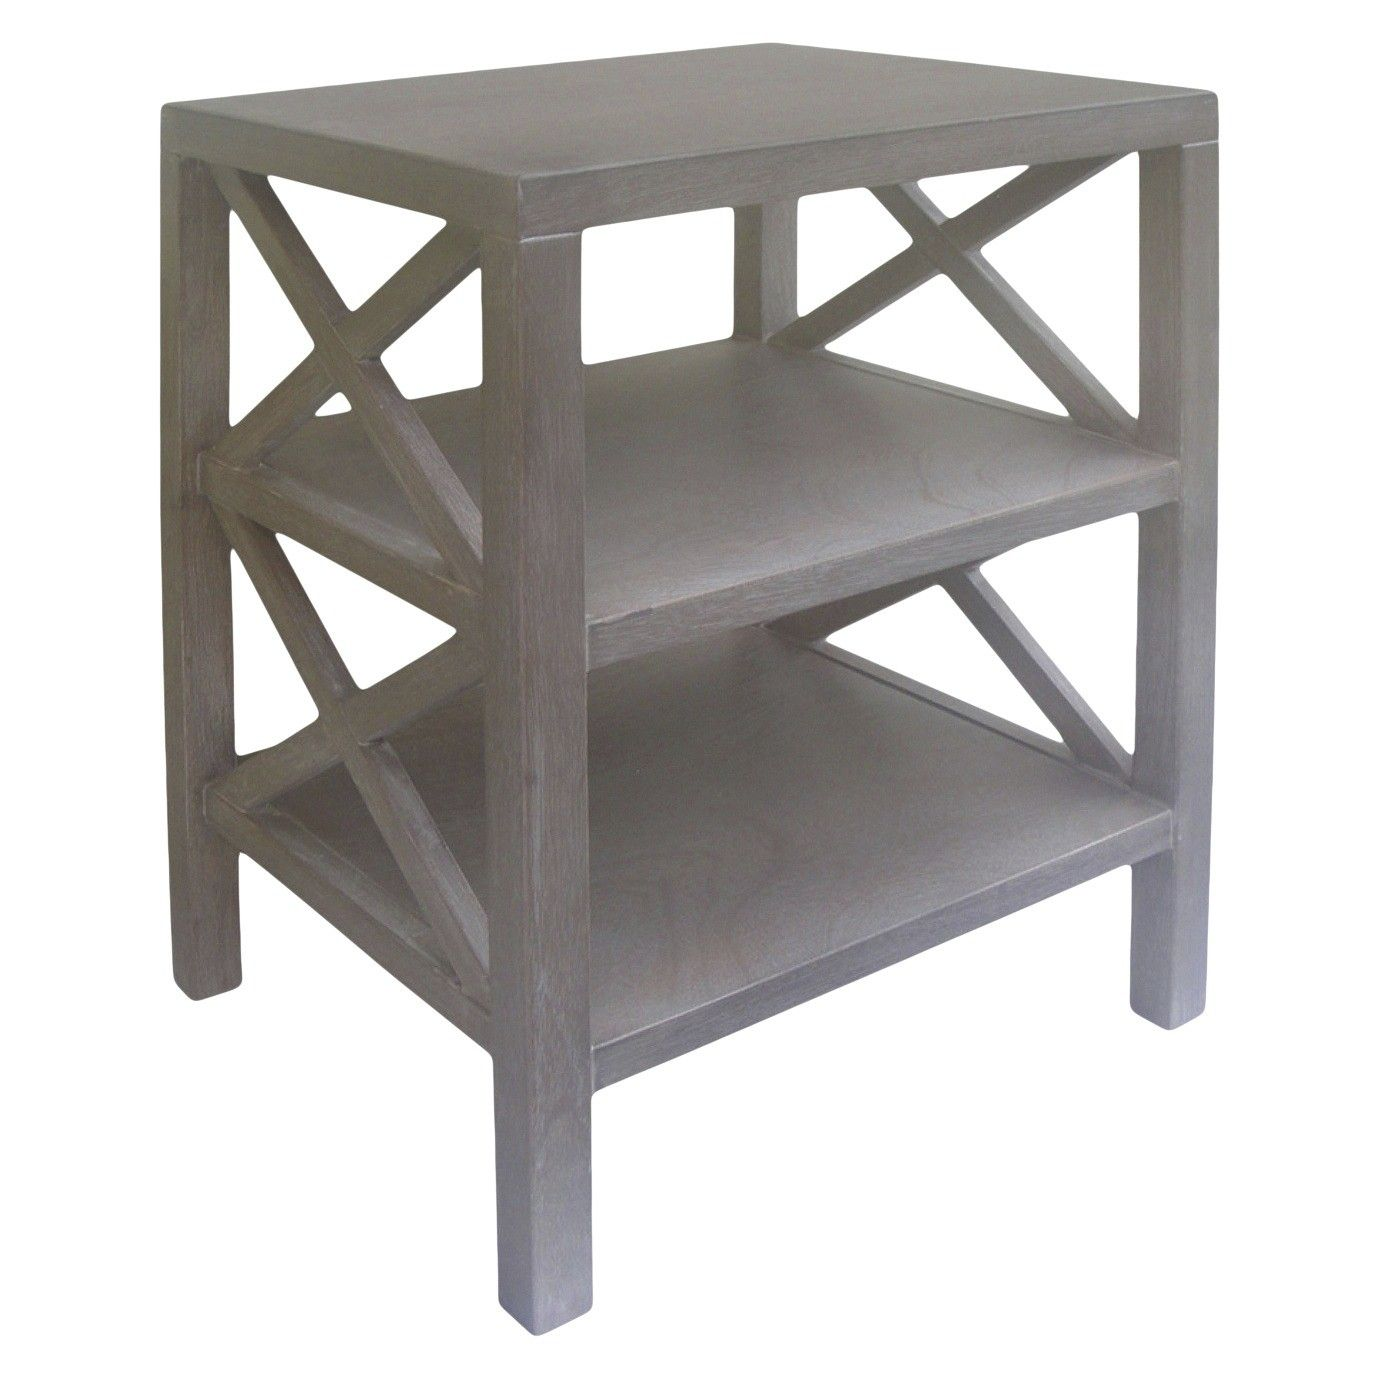 threshold accent table gray wash target bedroom wood and steel side pulaski sofa valley furniture lime green crystal bedside lights ikea storage units with baskets pier outdoor